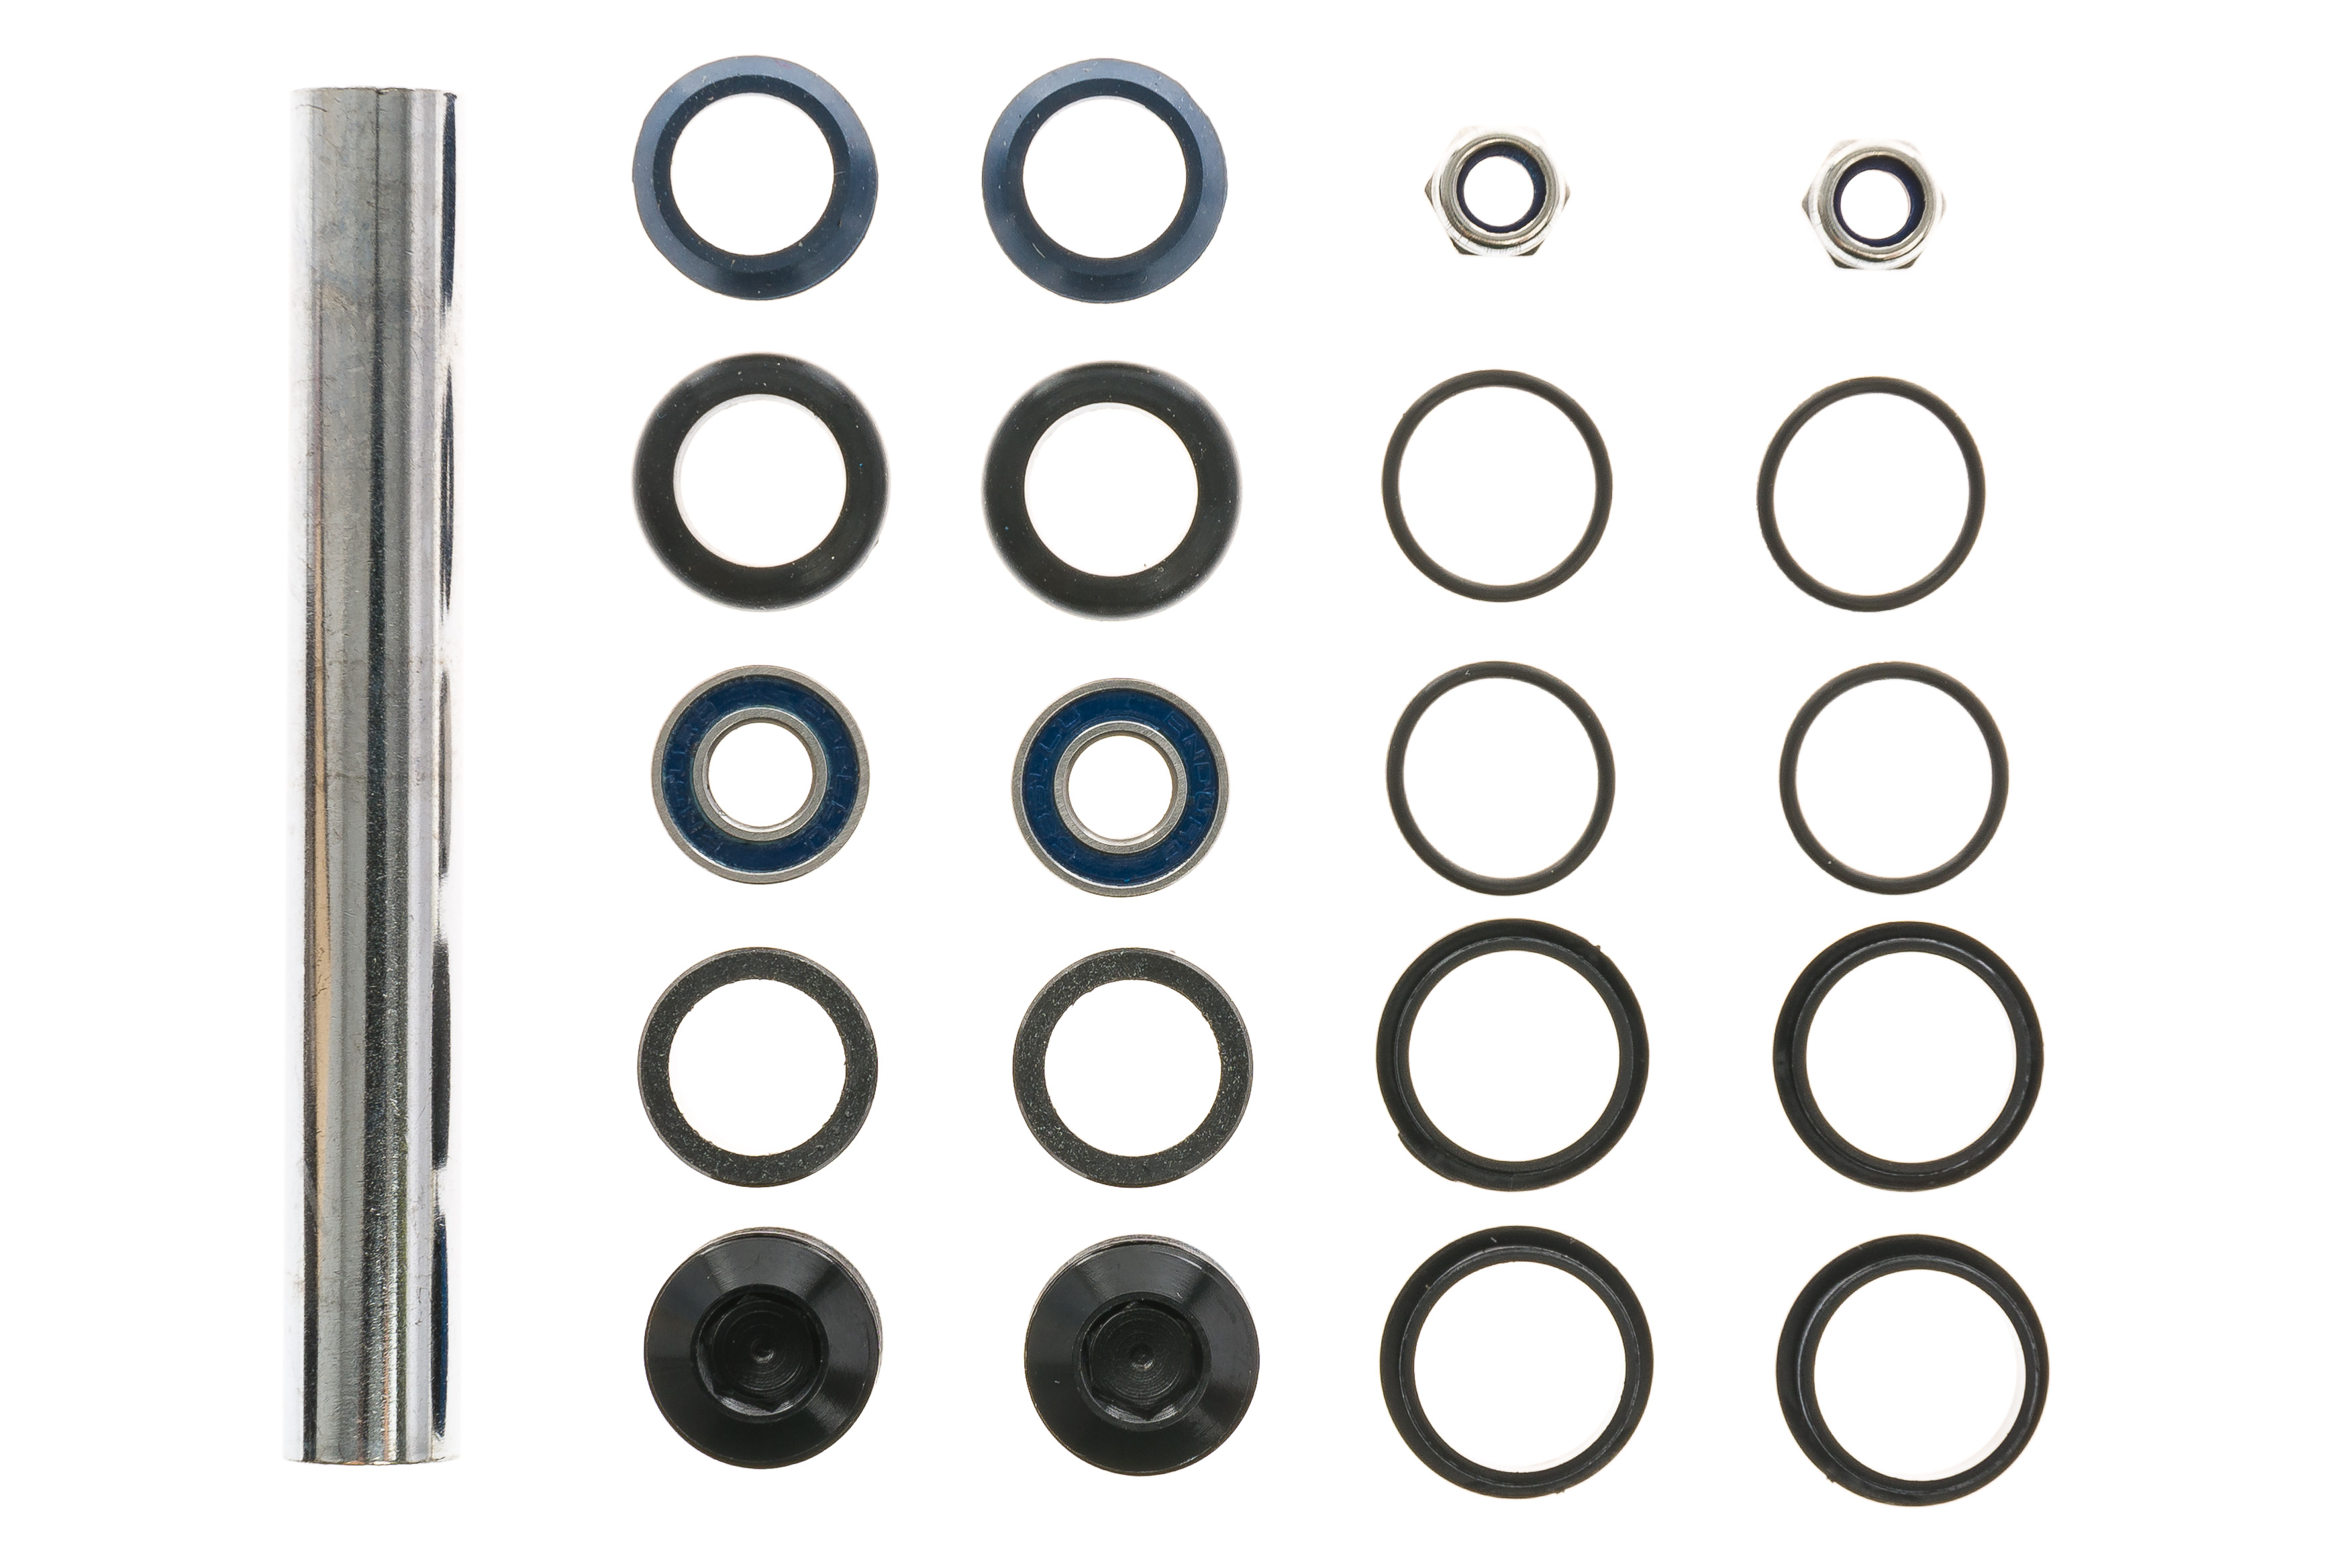 b98724279 Details about Crank Brothers Pedal Refresh Kit for Eggbeater   Candy    Mallet   50 50